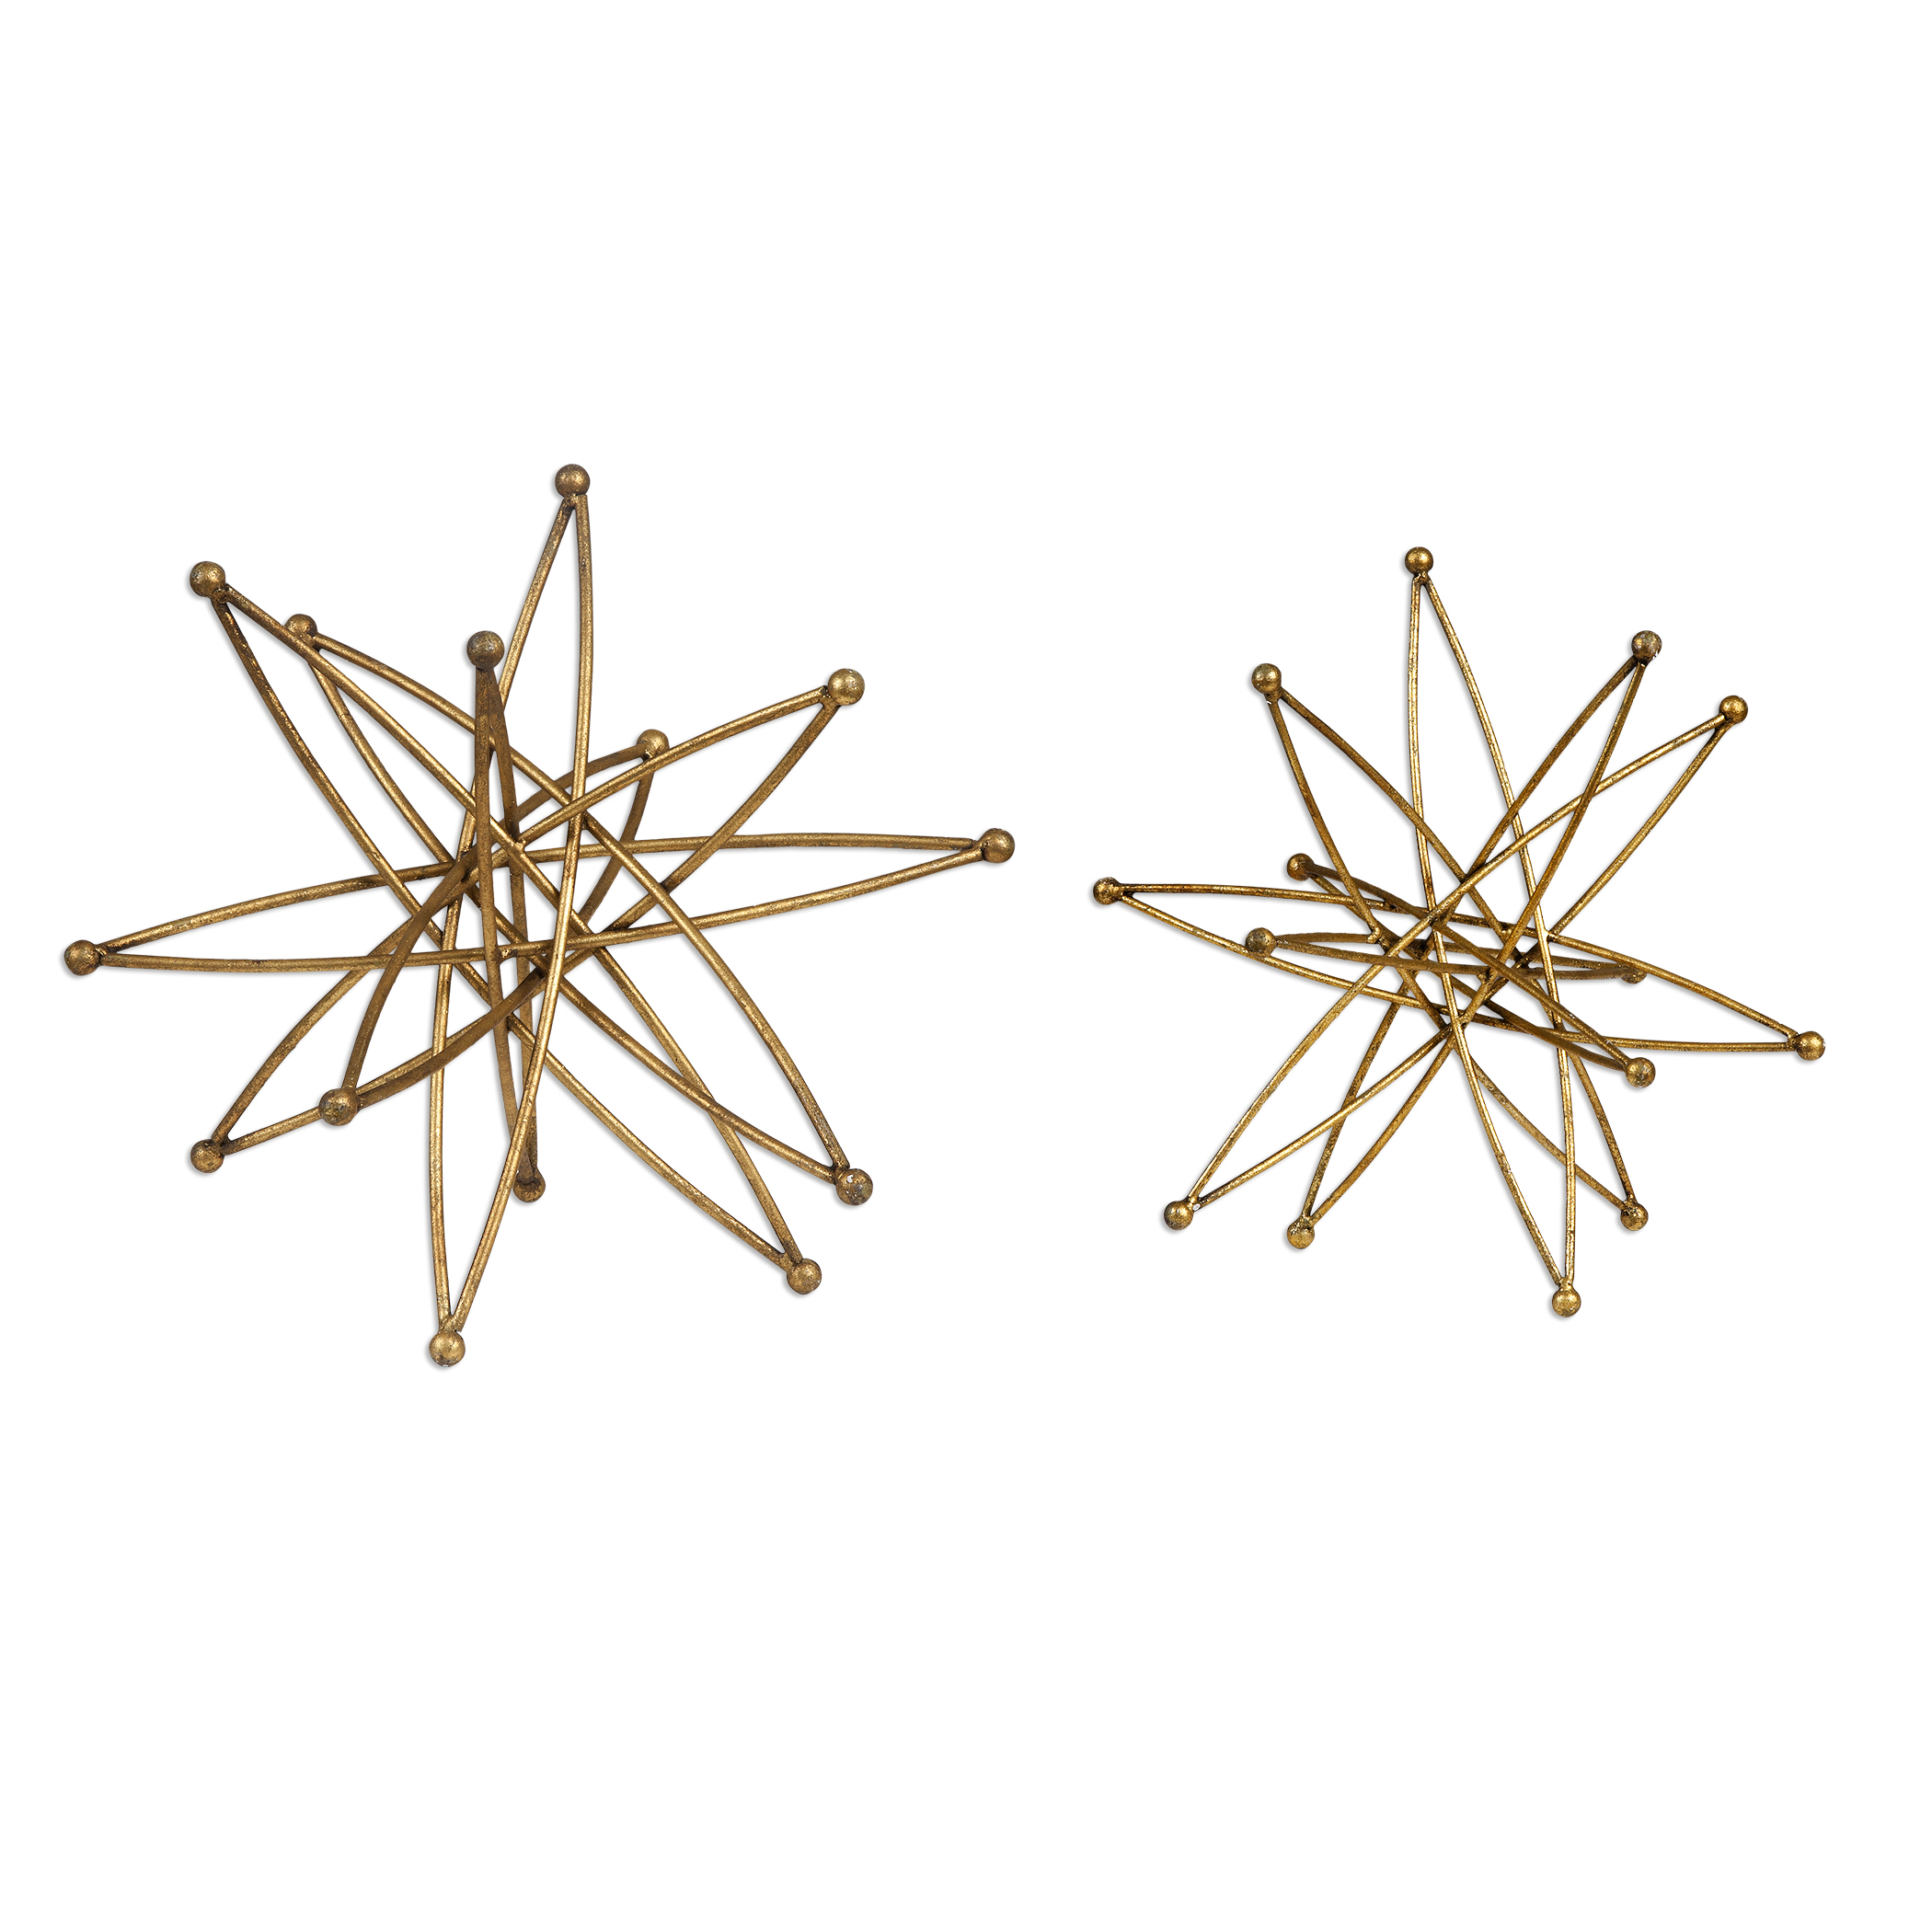 Uttermost Accessories Constanza Gold Atom Accessories, S/2 - Item Number: 20061